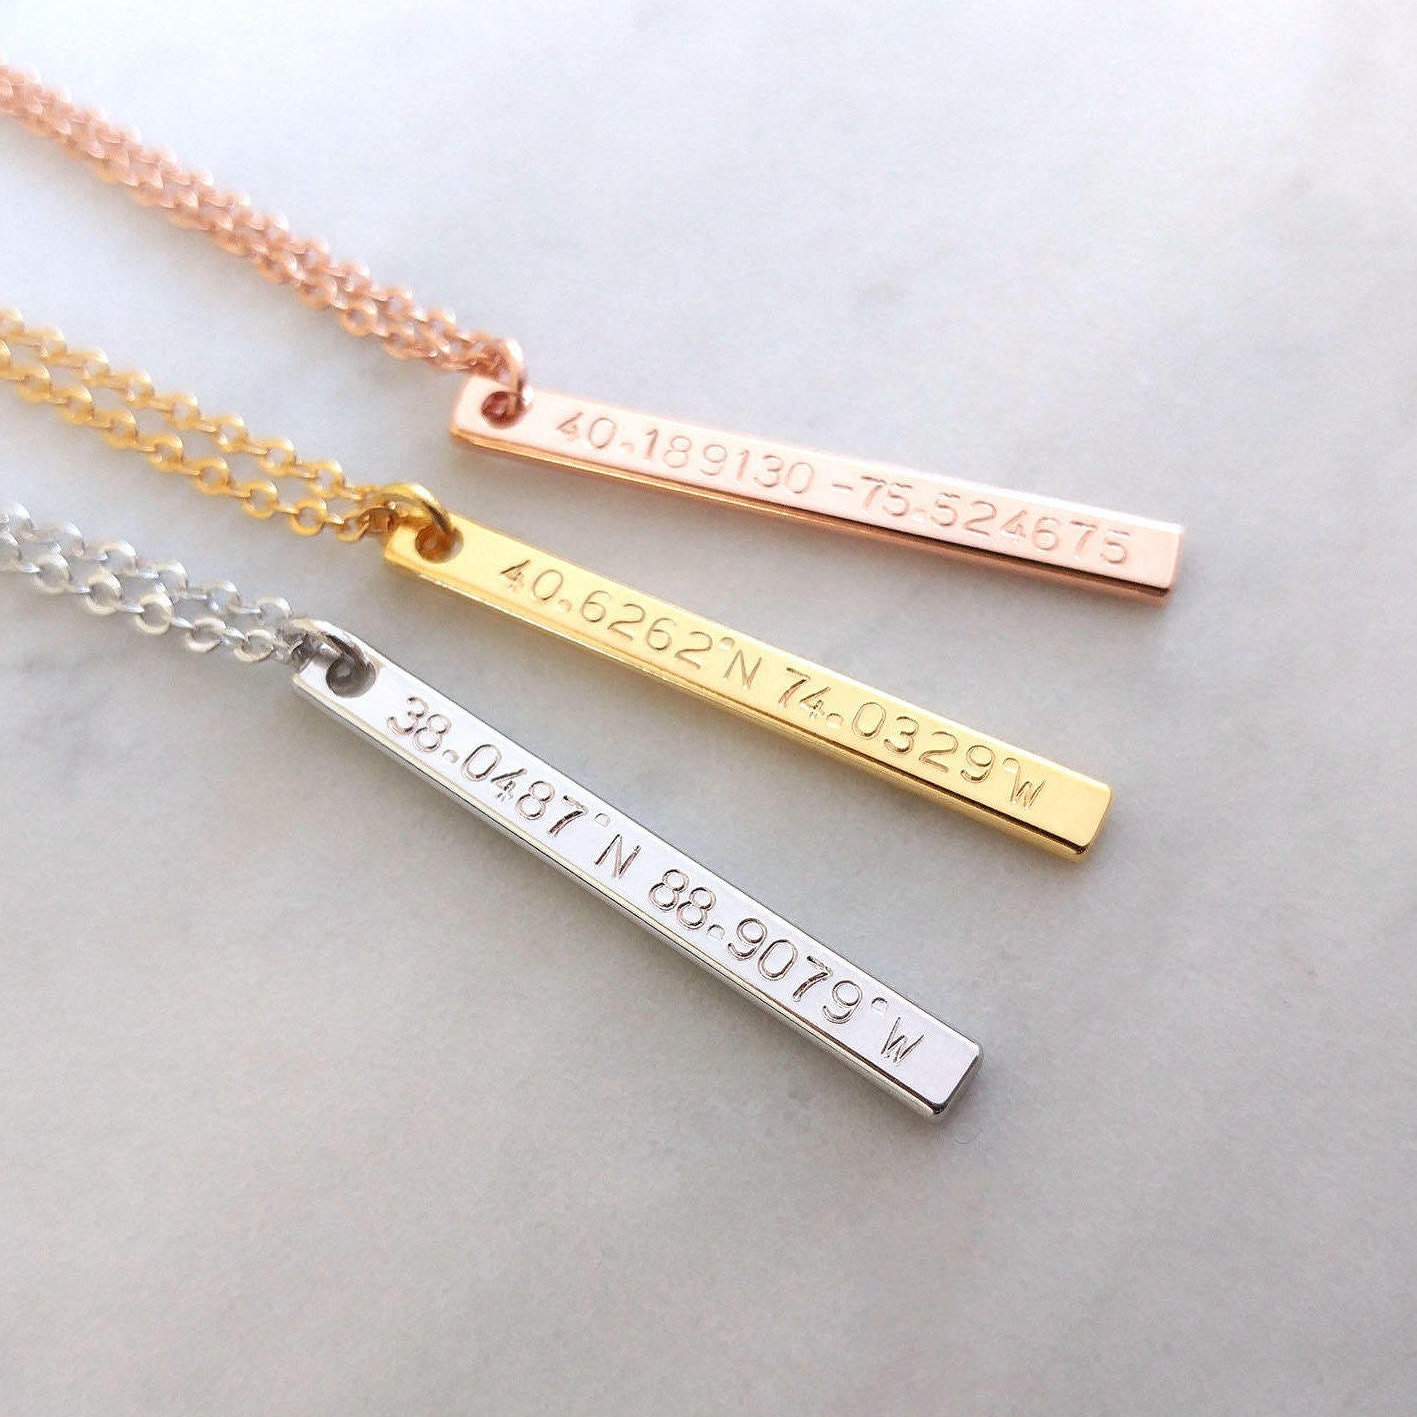 Gps Coordinates Necklace: Custom Coordinates Necklace Location GPS Coordinates